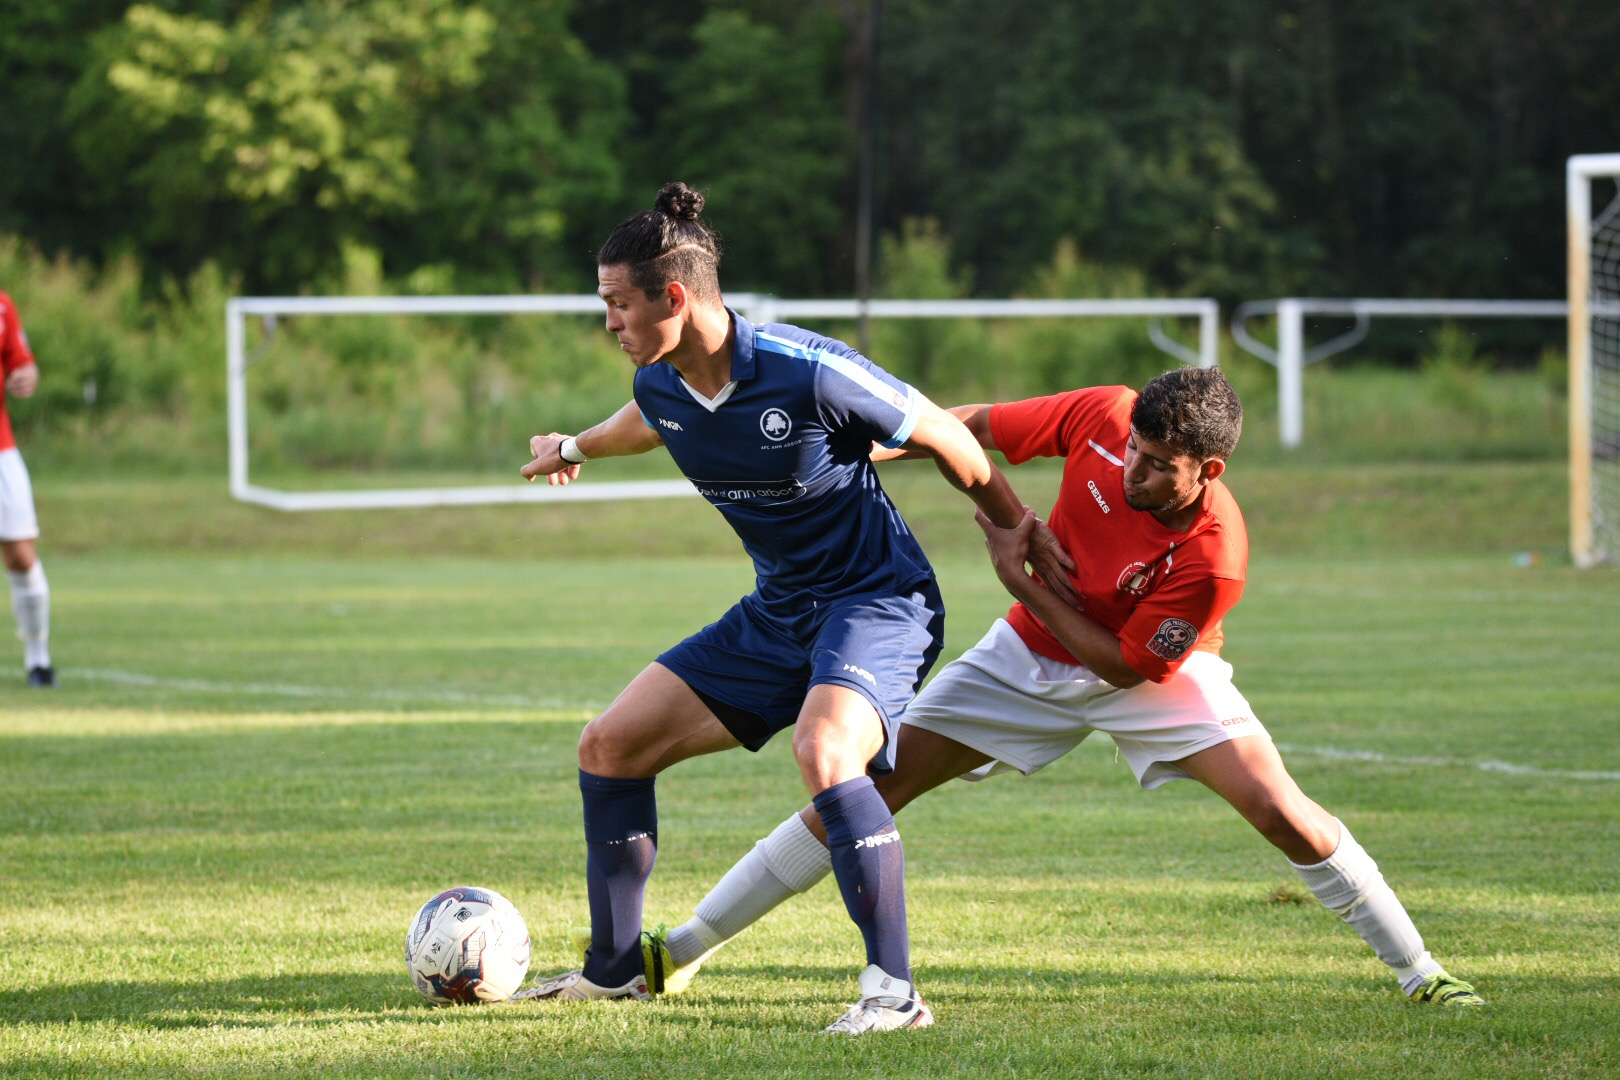 Yuri Farkas assisted on 2 of the 4 AFC Ann Arbor goals Friday night in Indiana